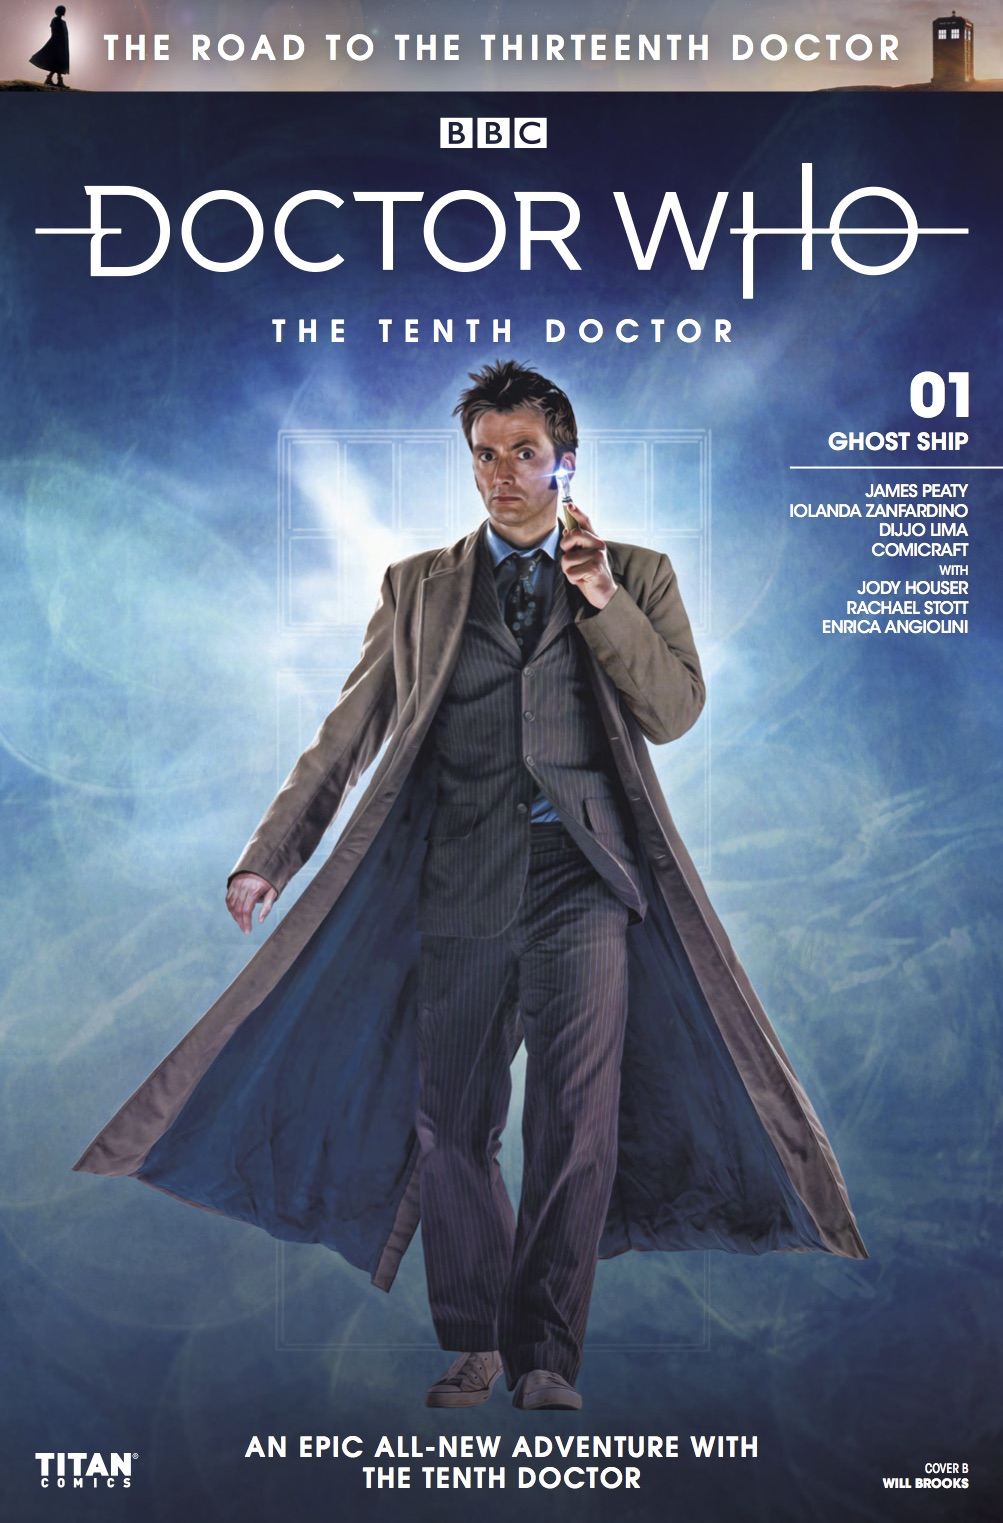 review doctor who the road to the thirteenth doctor 1 the tenth